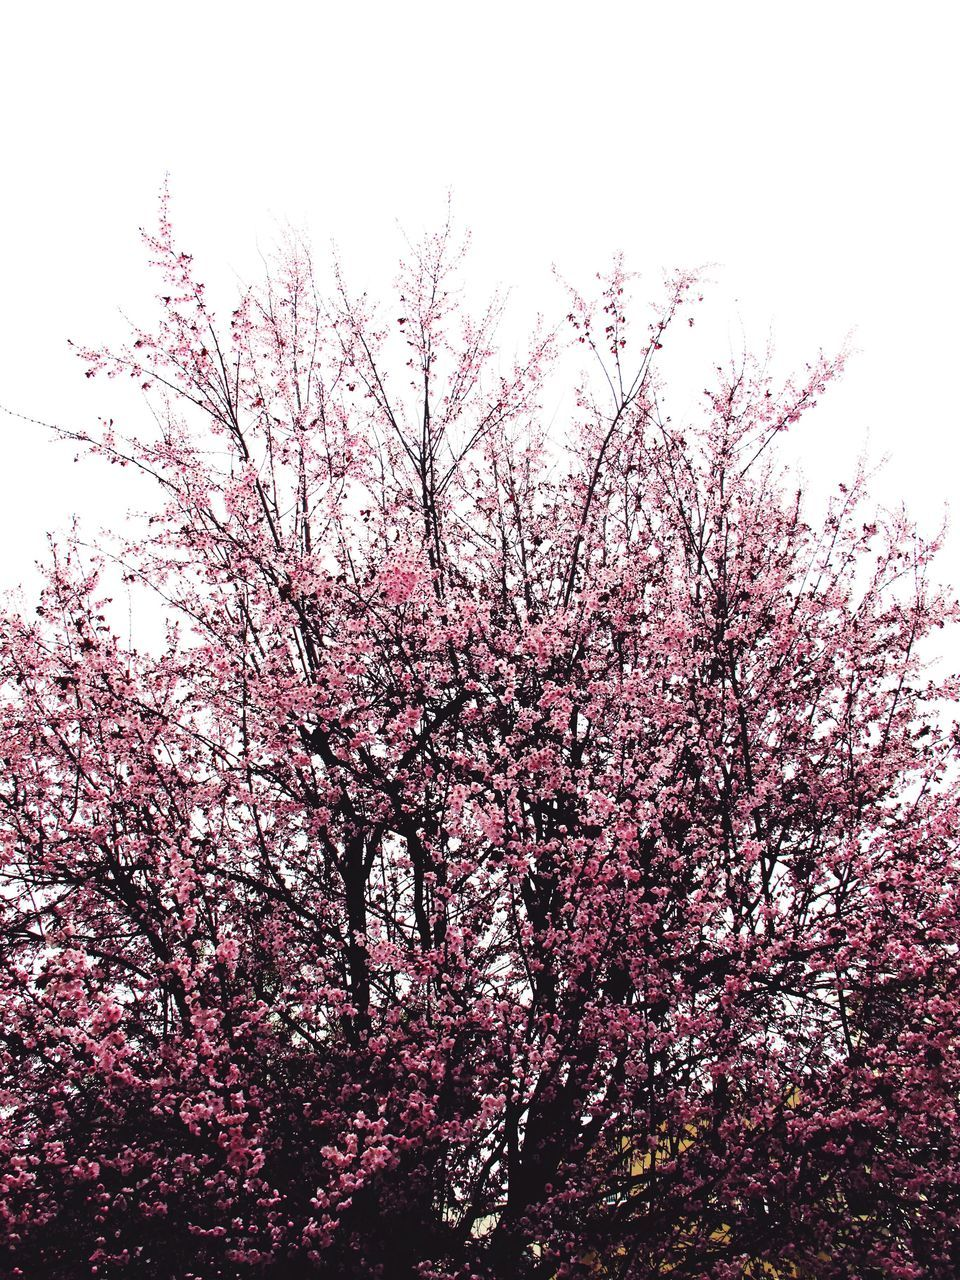 flower, blossom, tree, pink color, springtime, low angle view, beauty in nature, freshness, branch, fragility, nature, growth, cherry tree, botany, no people, pink, day, outdoors, sky, plum blossom, flower head, close-up